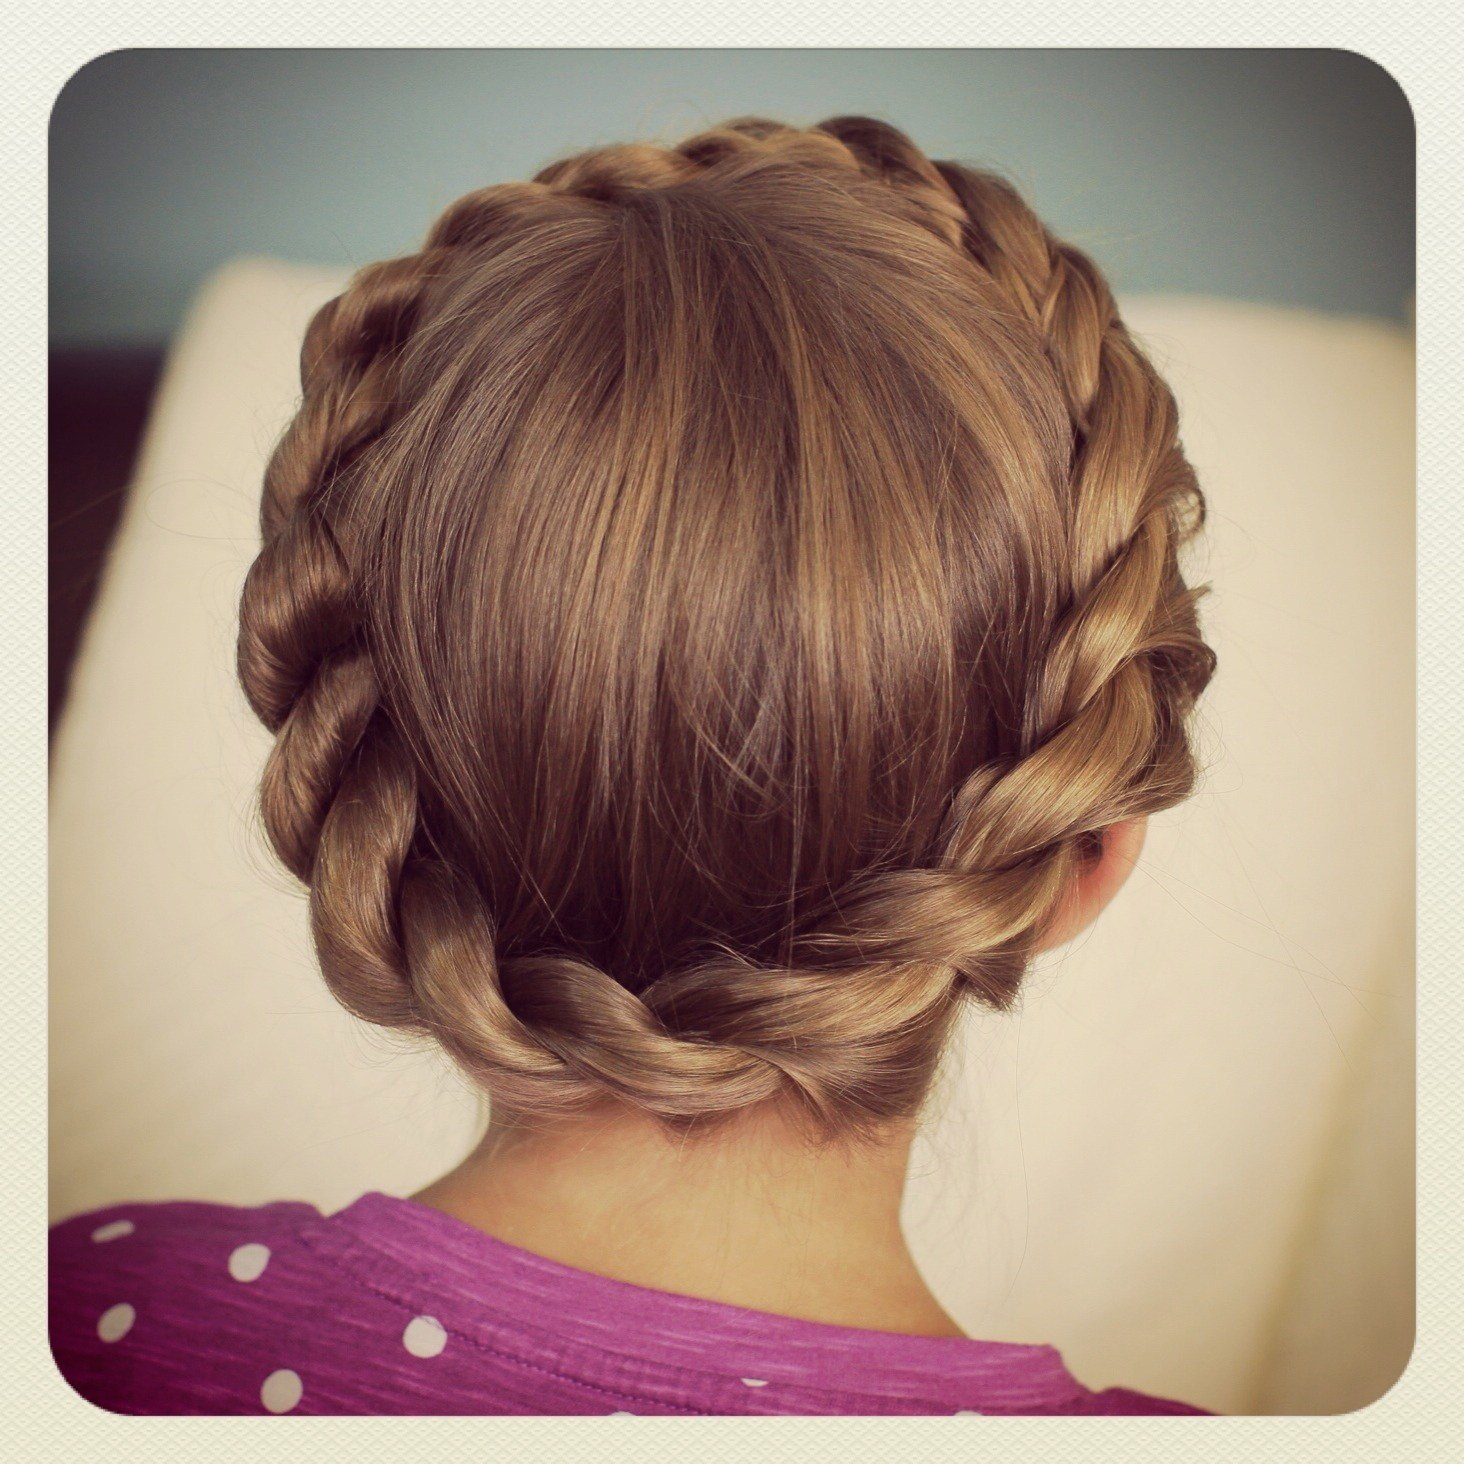 The Best Crown Rope Twist Braid Updo Hairstyles Cute Girls Pictures